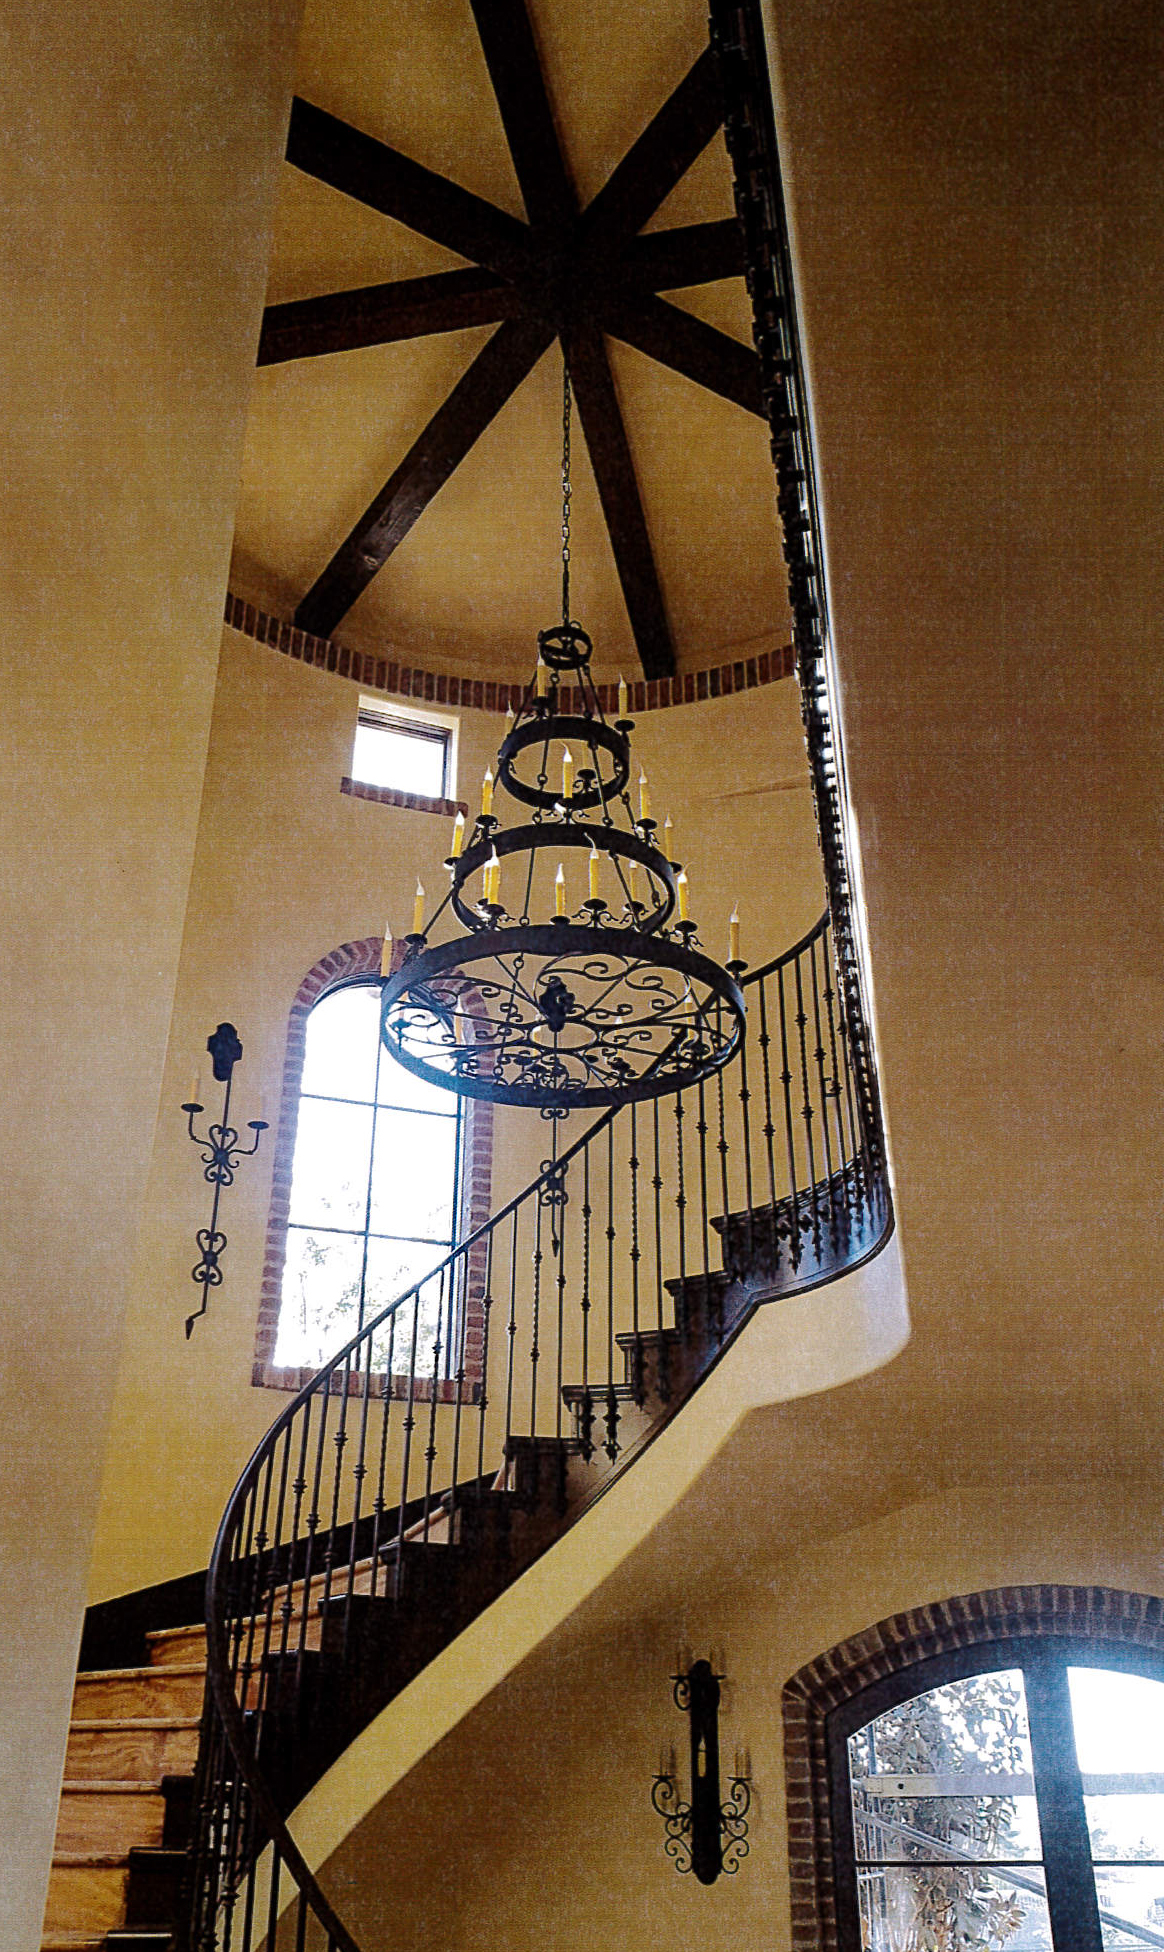 Las Vegas Stairwell with Chandelier and Sconces.jpg